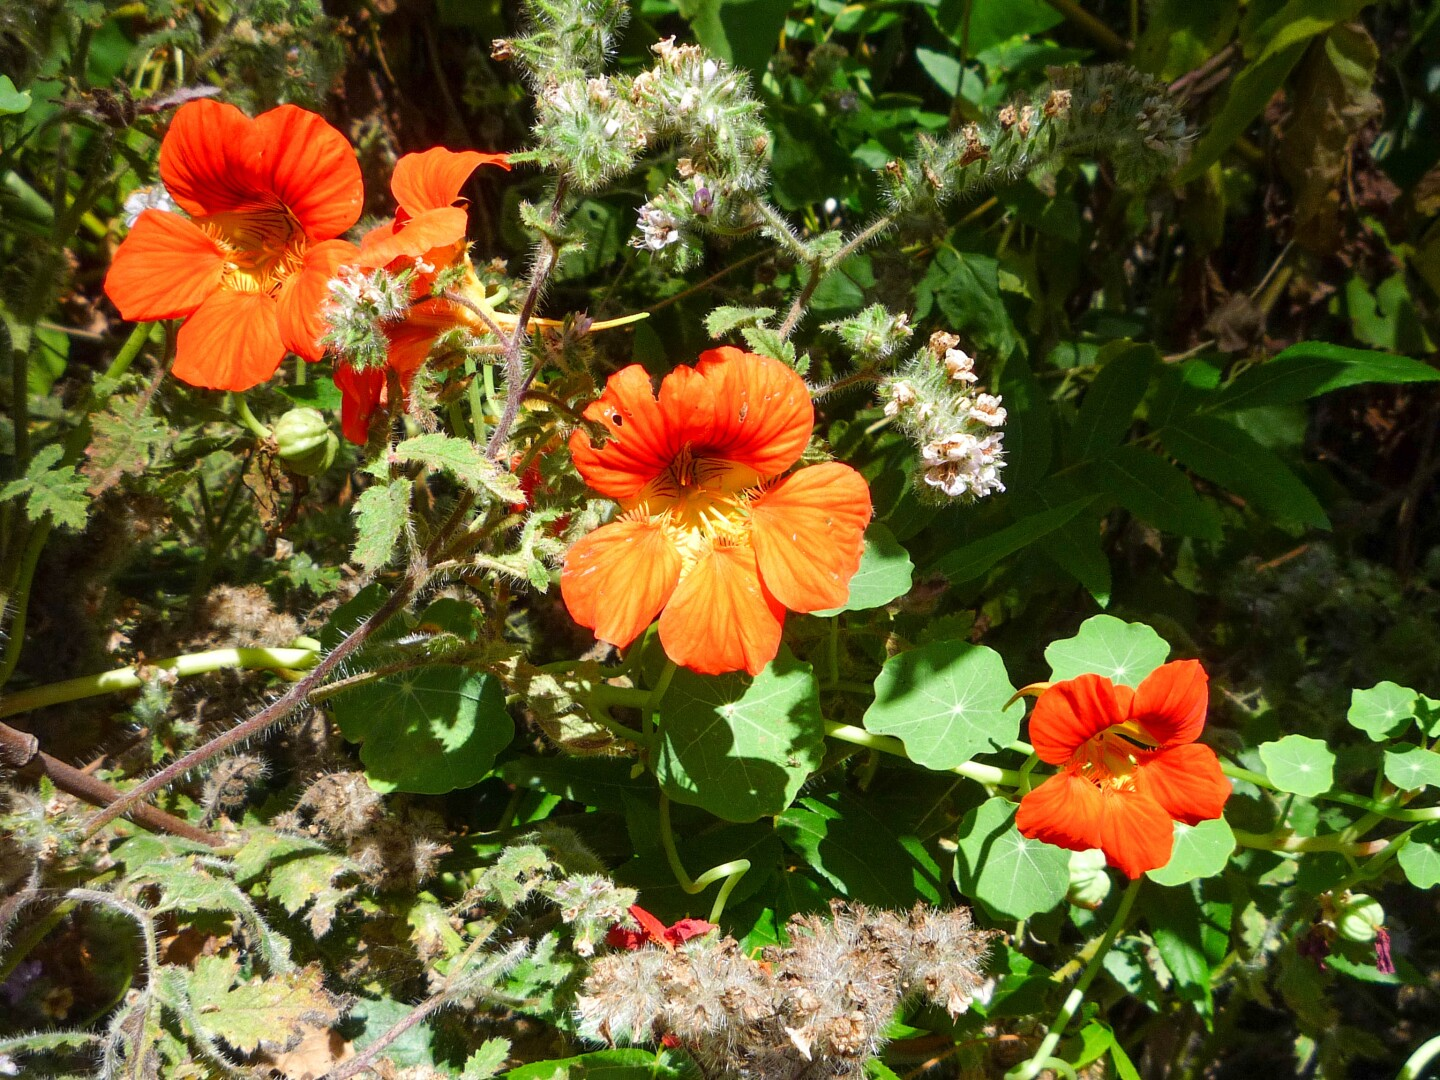 A close-up of red wldflowers found along the Solstice Canyon trail in the Santa Monica Mountains.